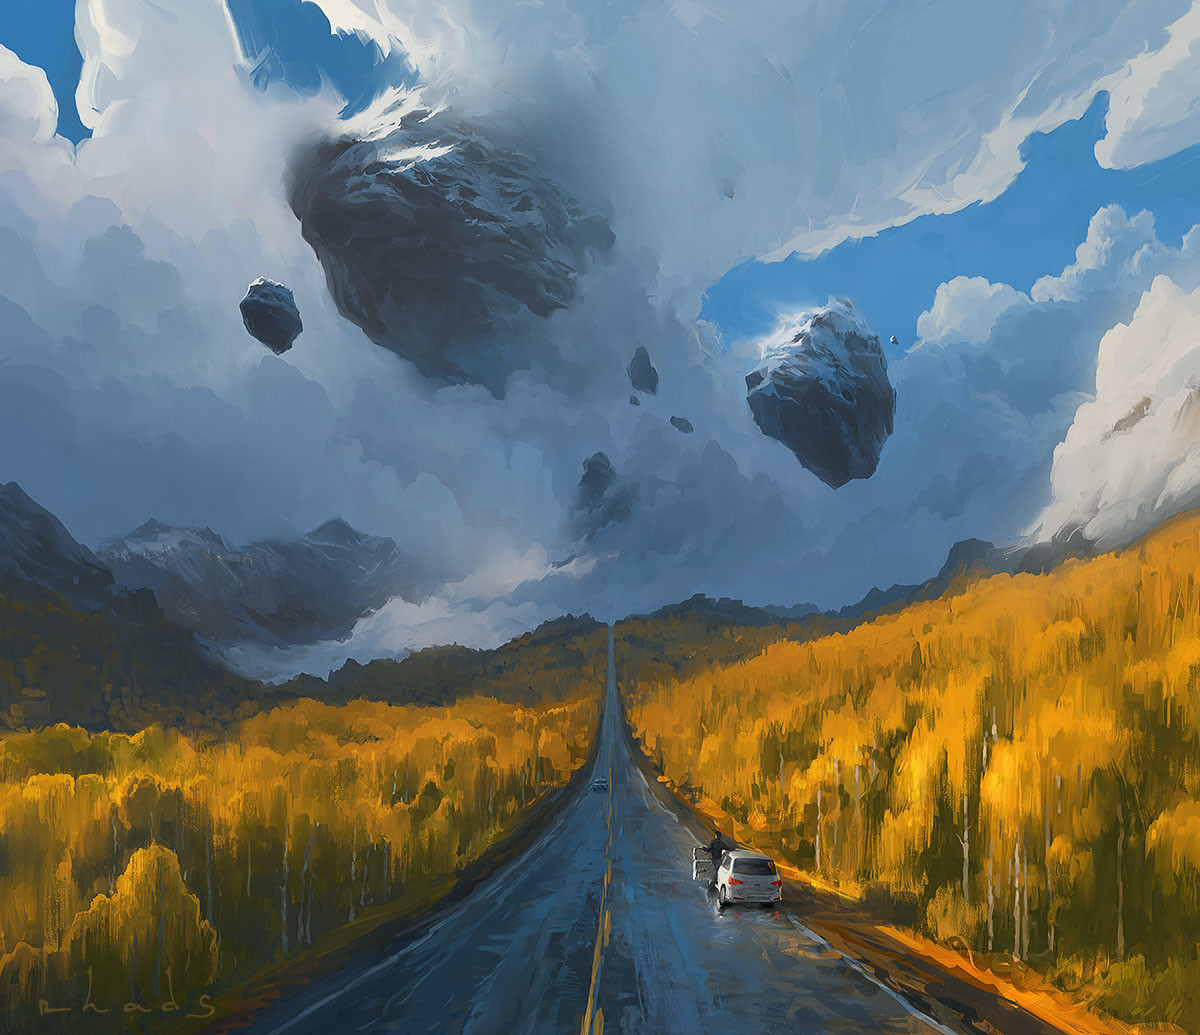 Digital Painting Illustration Artem Chebokha Rhads Rock Clouds Road